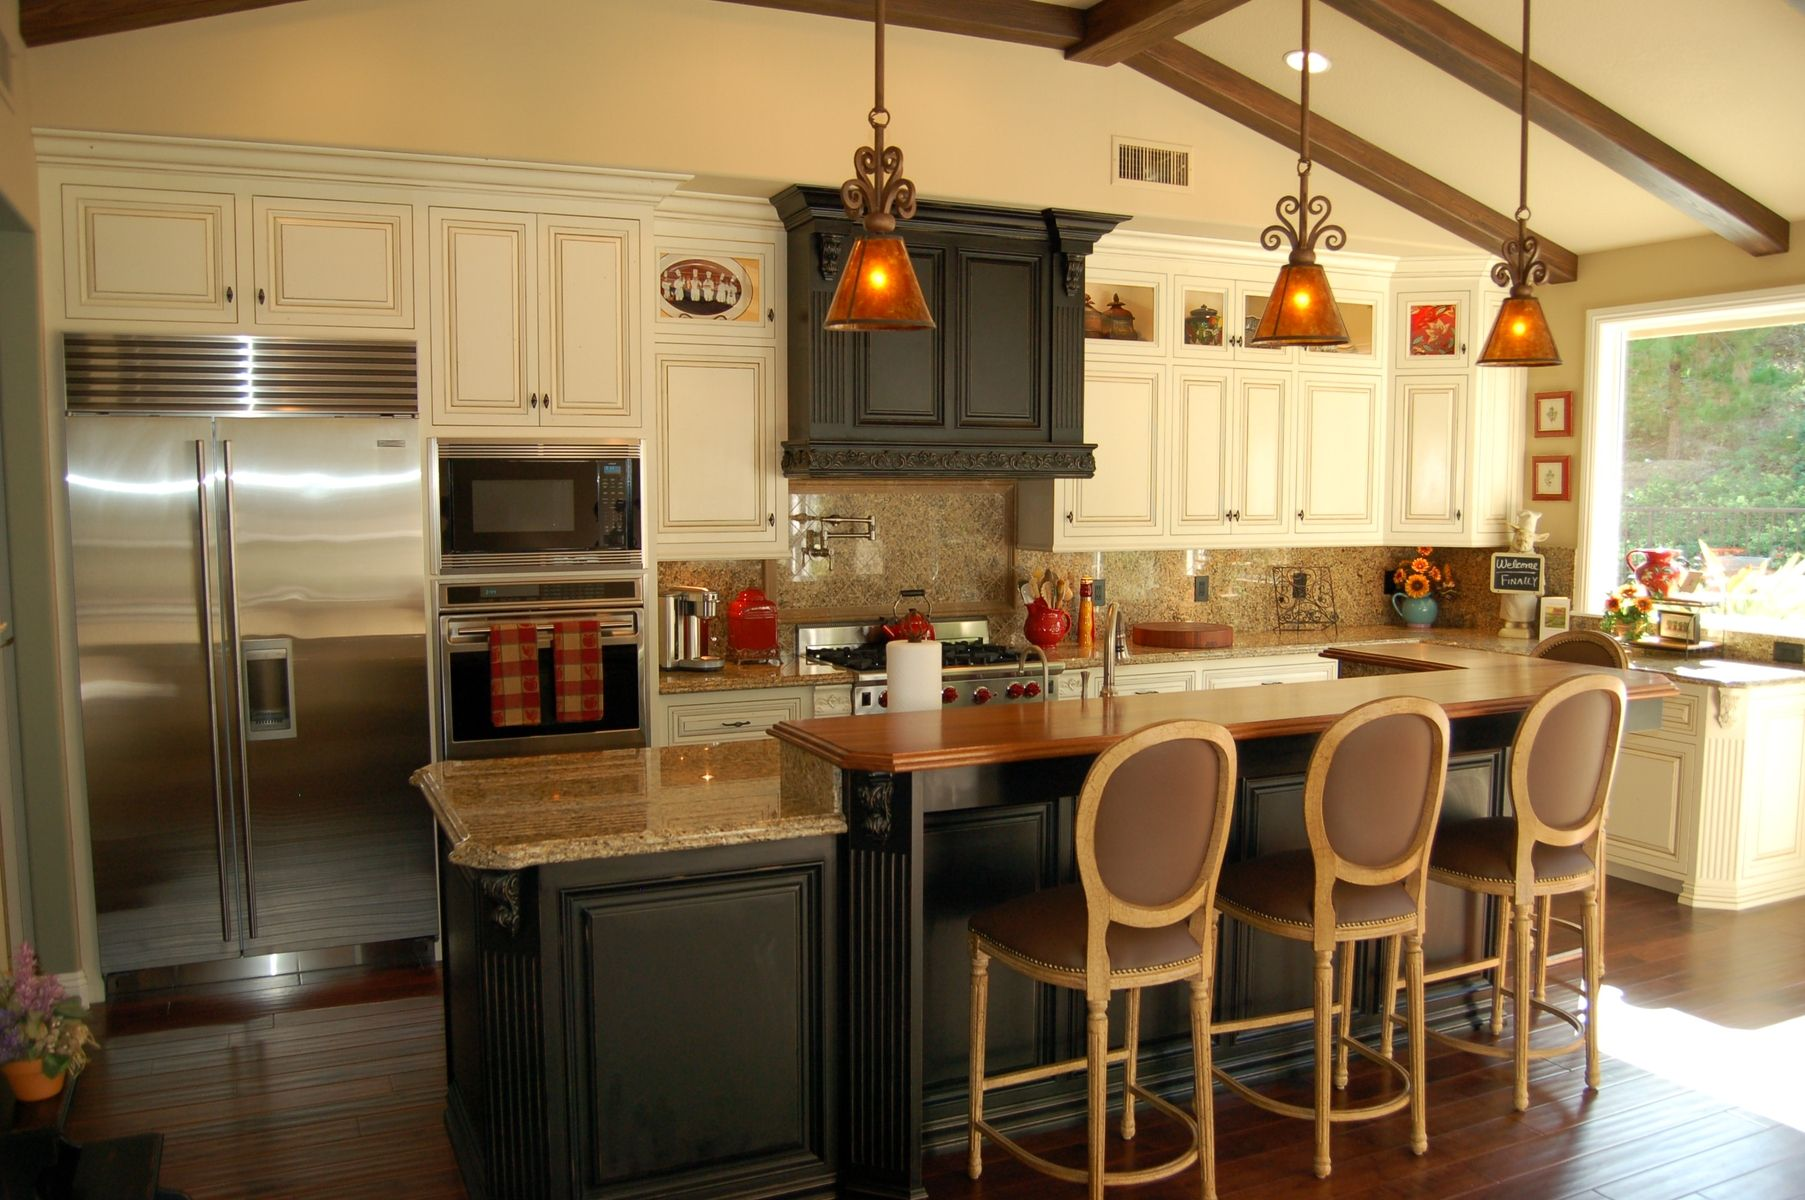 Custom Made Kitchen Cabinets mark sackman: westend custom cabinets | fontana, ca